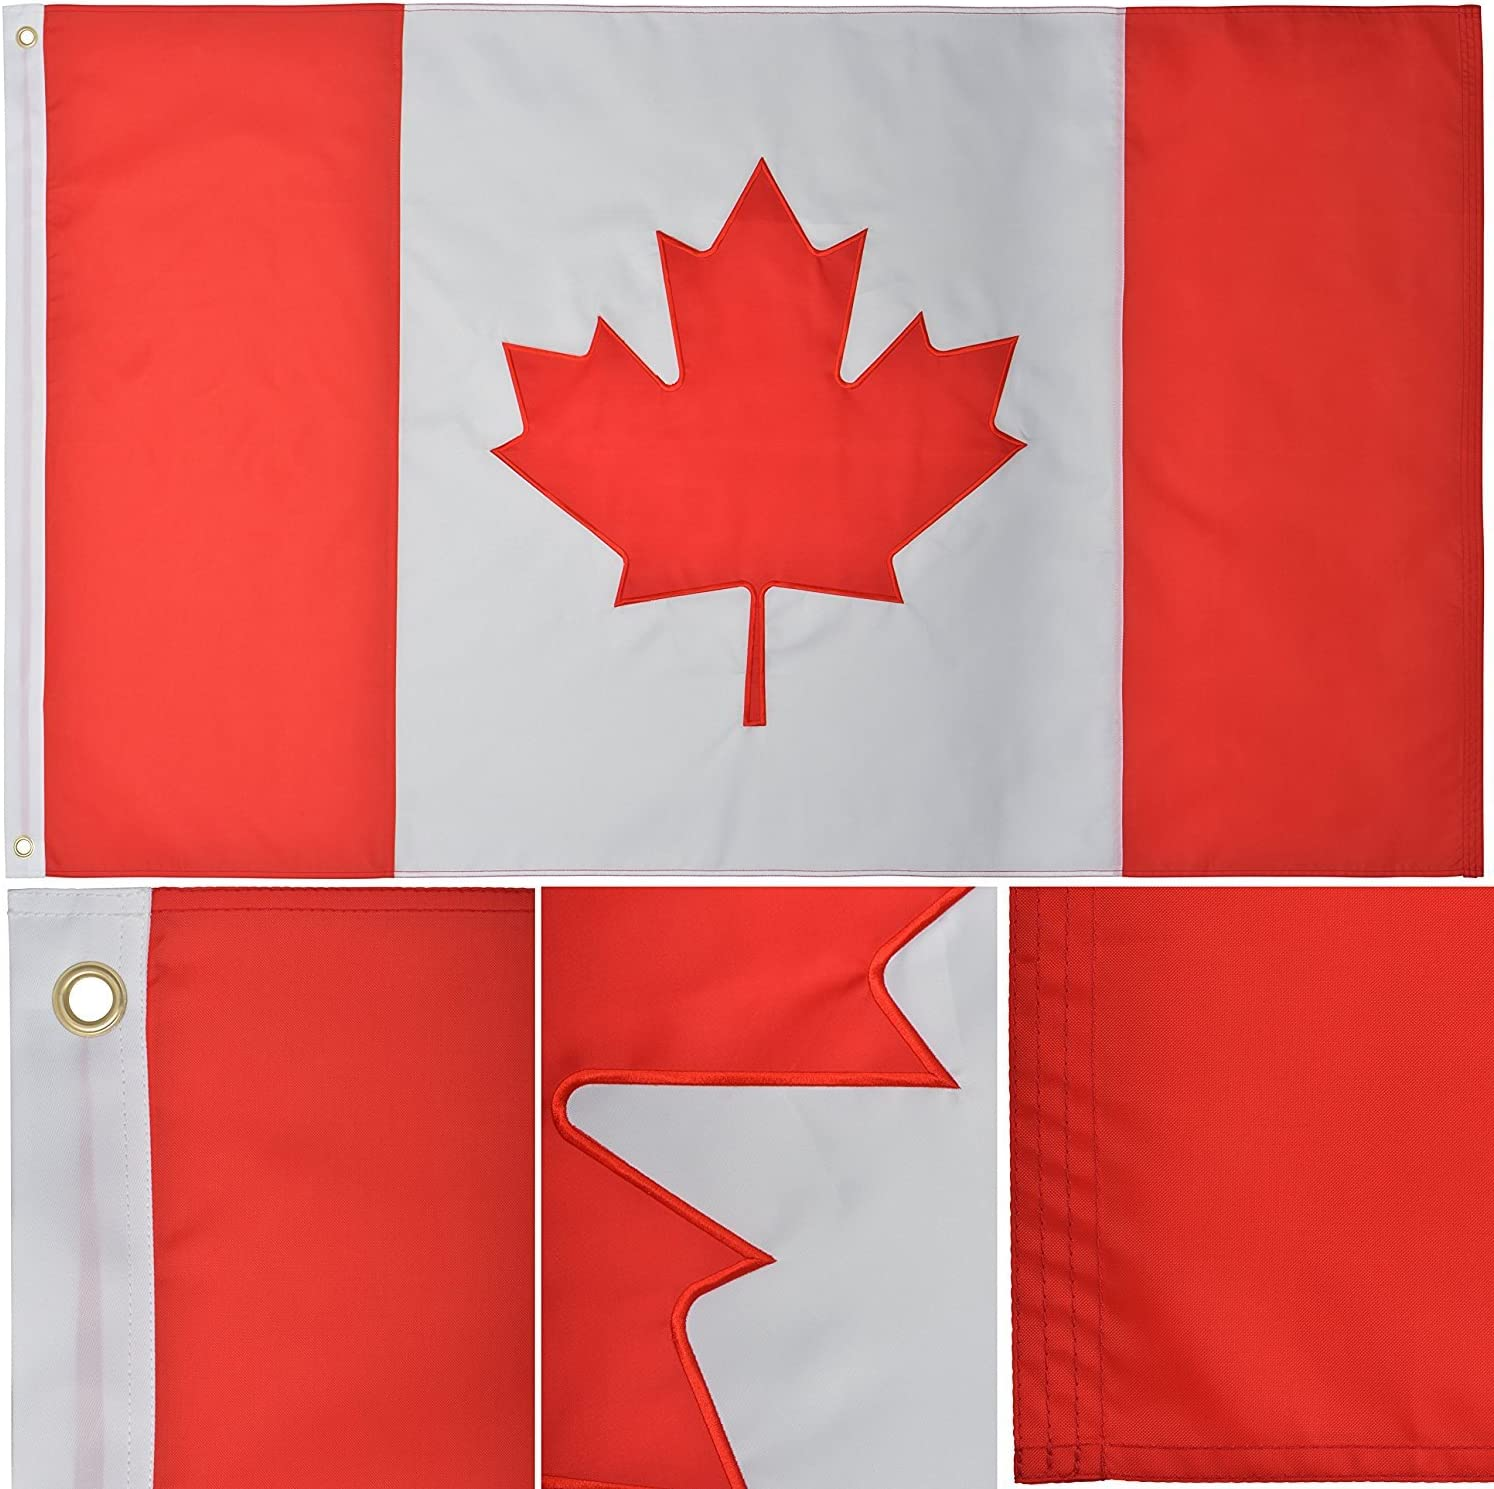 Triple Stitching Canvas Header and Brass Grommets for All-Weather Outdoor Display Wowflag Canada Flag 2x3 FT 2 Packs Canadian Flags Durable Embroidered Maple Leaf with Vivid Color